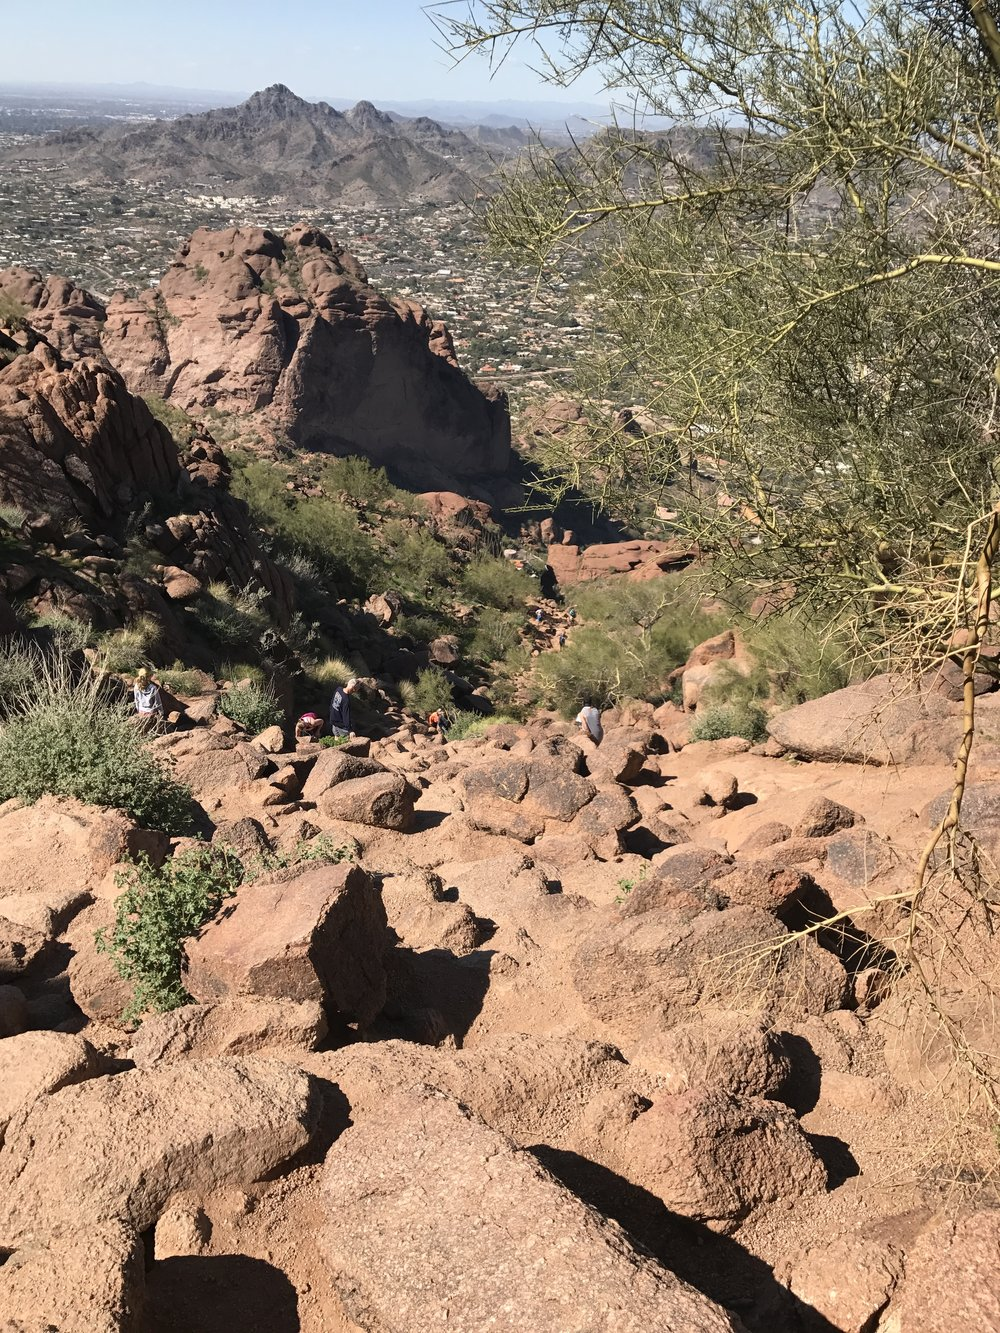 Echo Trail Head at Camelback. The hardest climbs bring the greatest rewards!